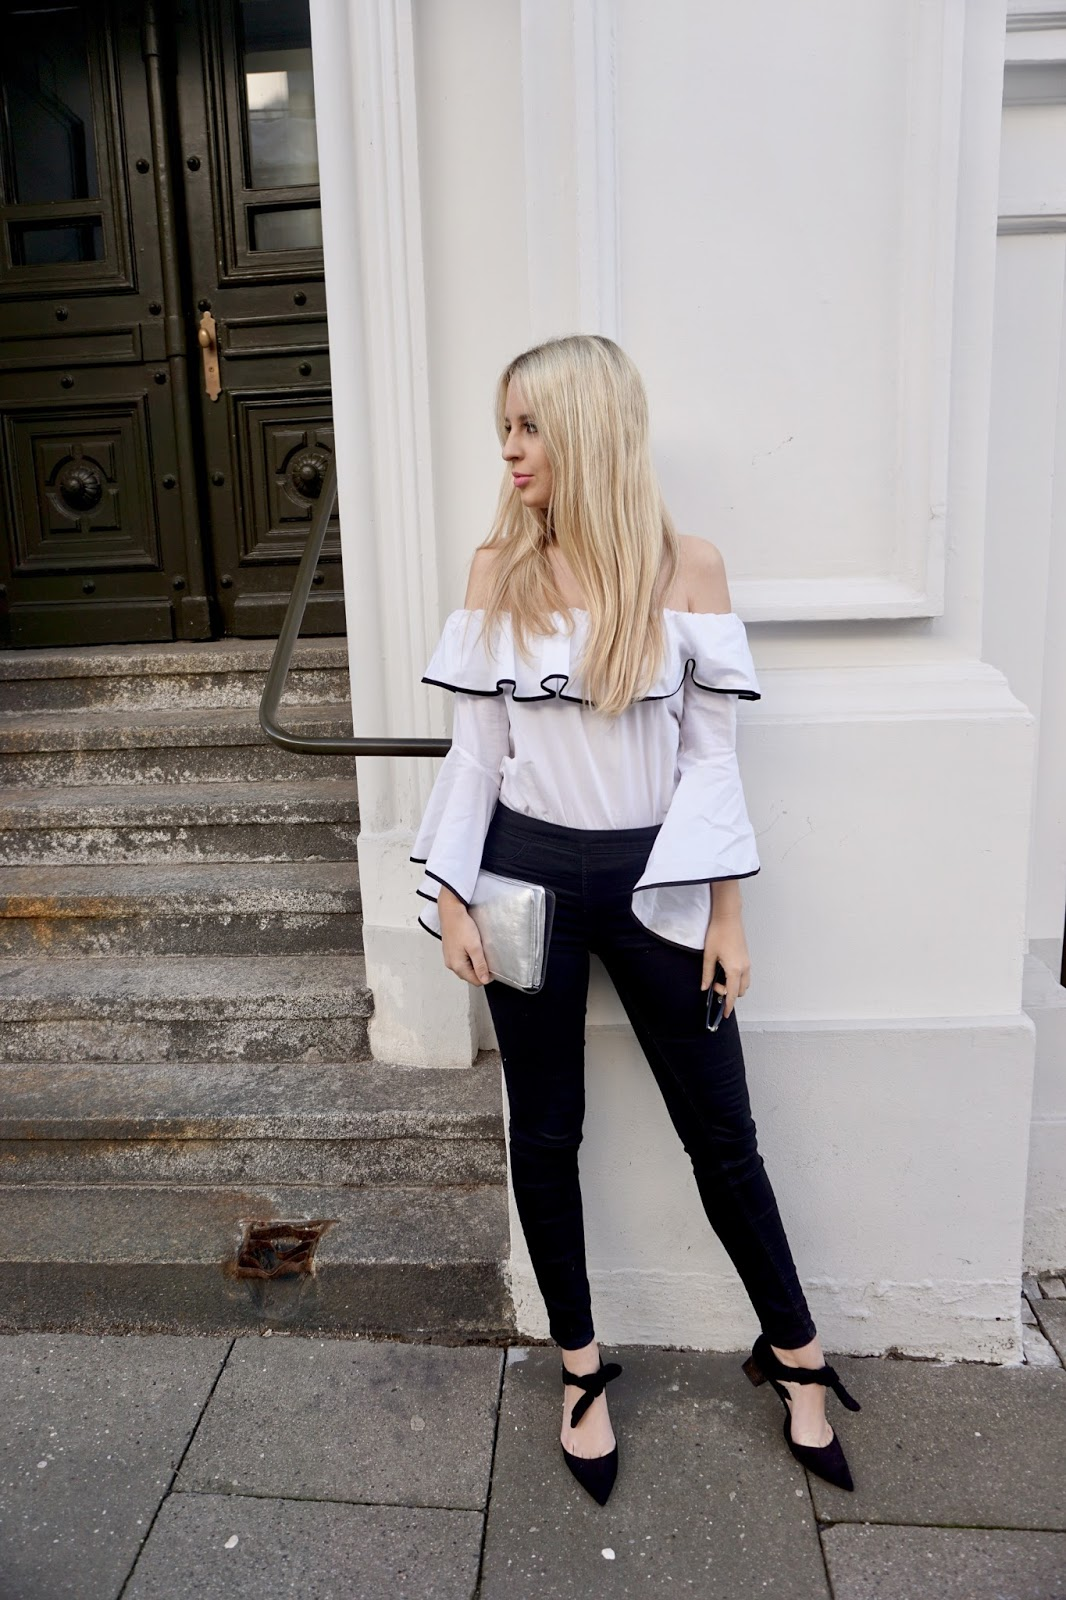 Off-The-Shoulder Bluse Theblondejourney-Östereich-Modeblog